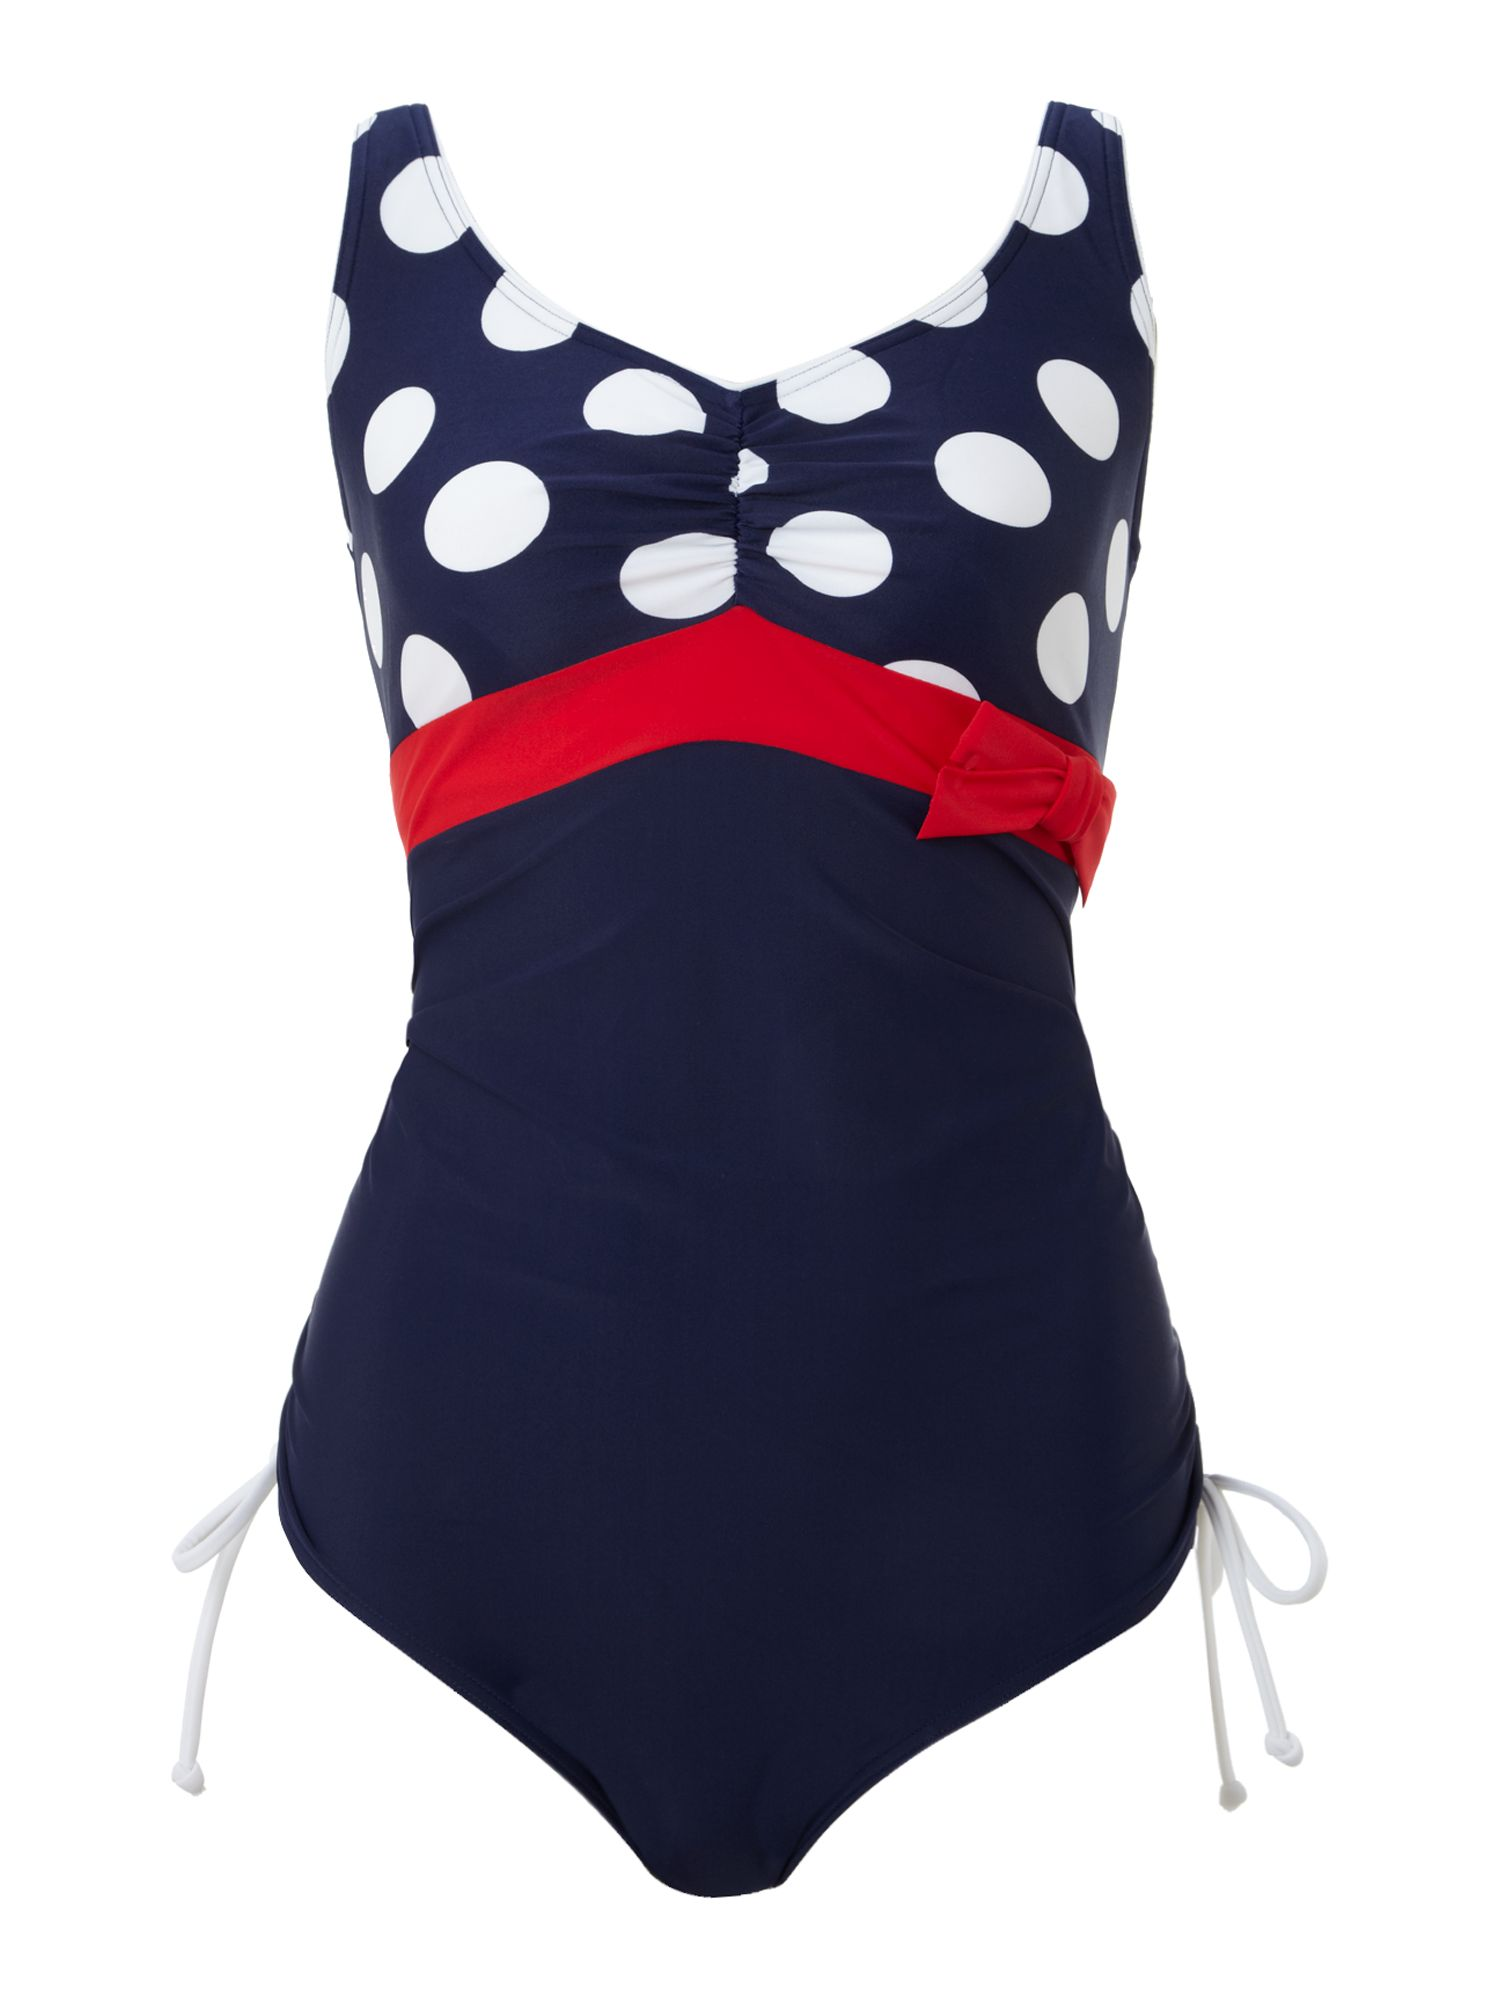 Mallacoota maternity elastomax swimsuit